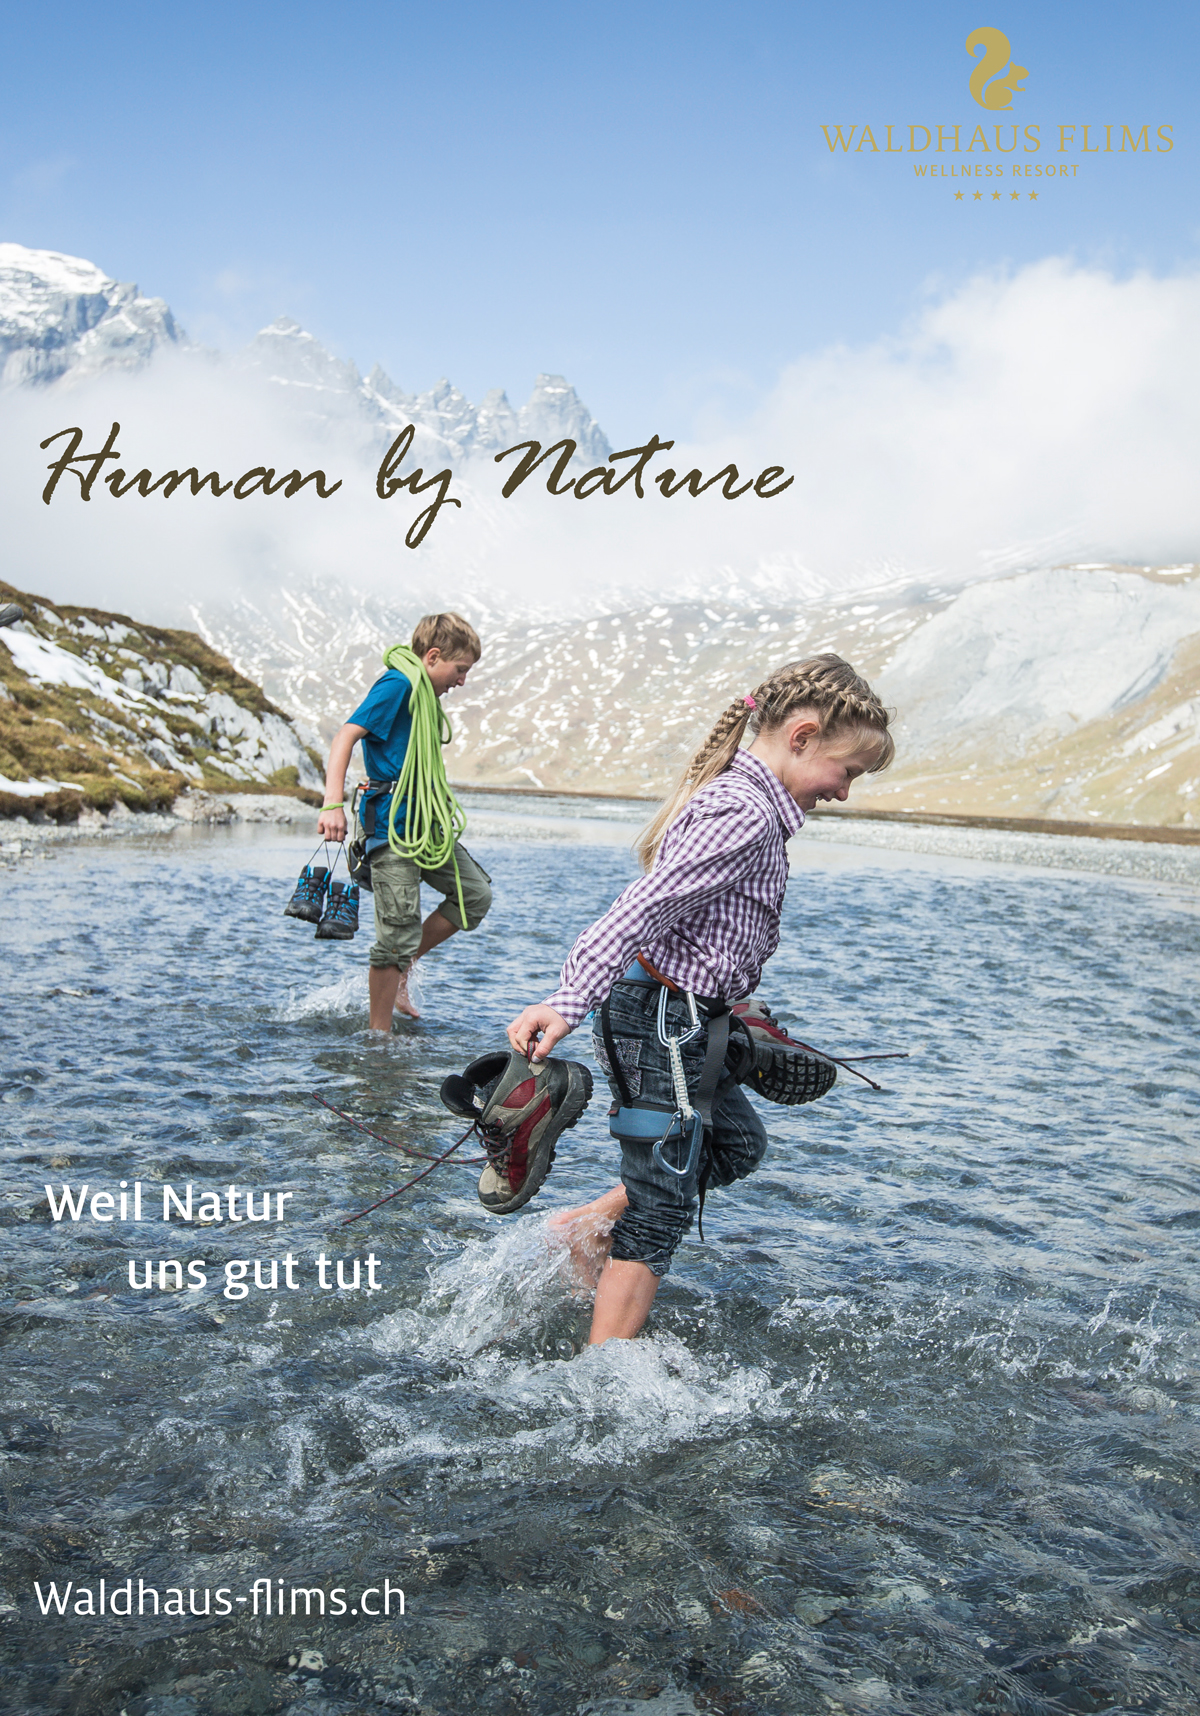 Human-by-Nature_Plakat-F4_V5-r